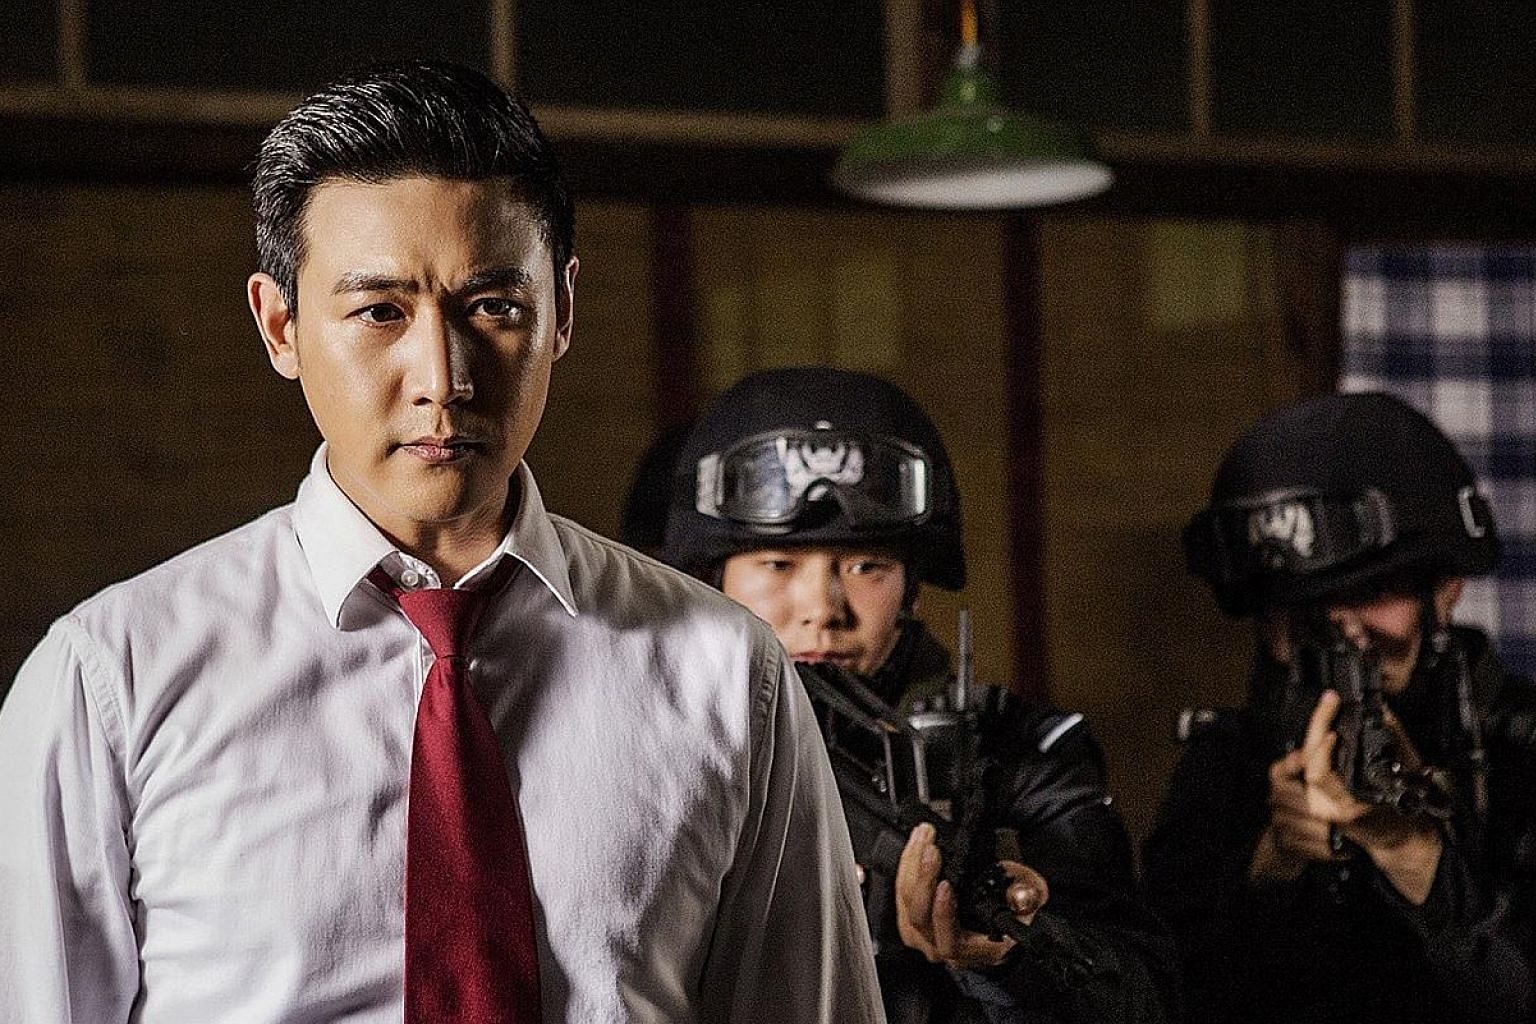 Lu Yi is an anti-corruption bureau chief in In The Name Of The People.